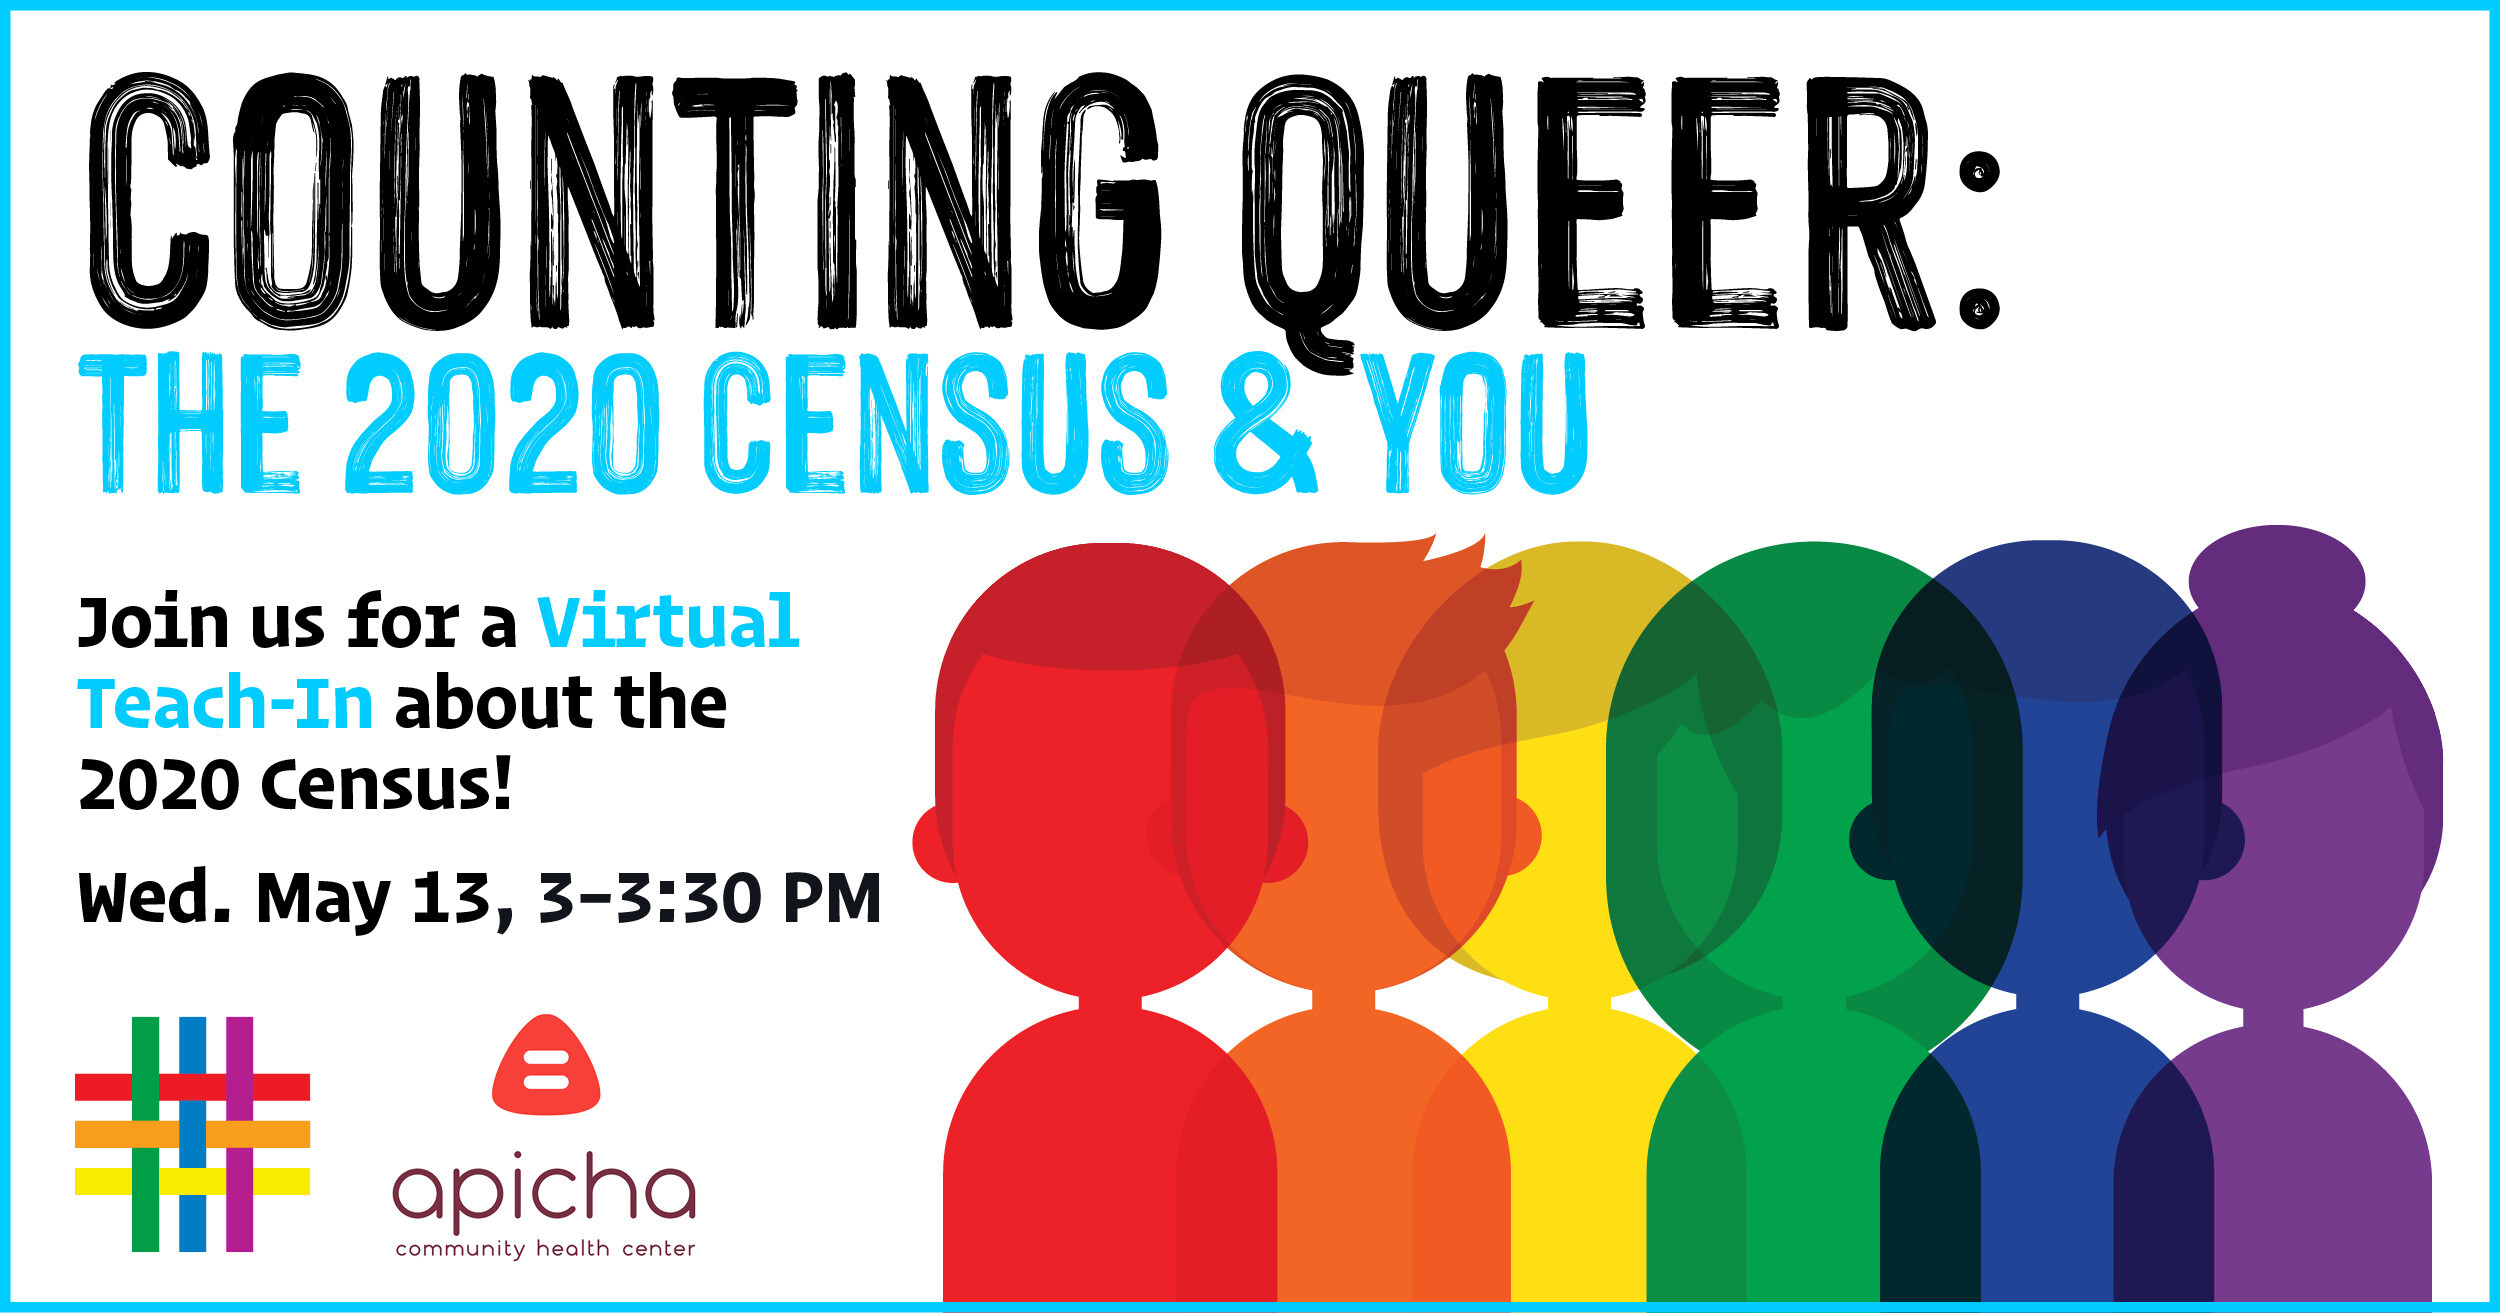 Counting Queer: The 2020 Census & You